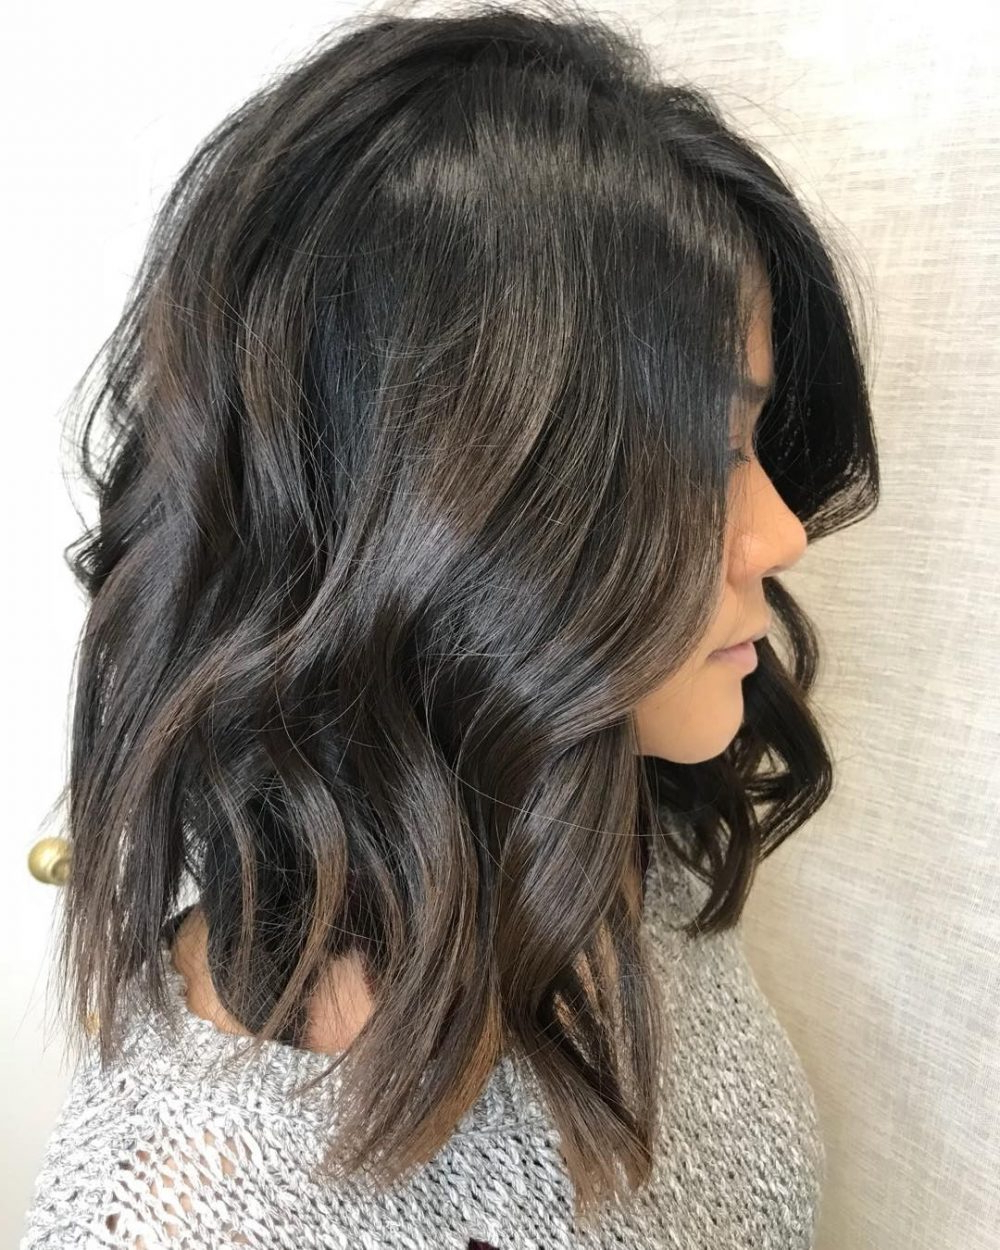 2017 Inverted Bob Medium Haircuts In 40 Gorgeous And Easy Medium To Shoulder Length Bob Haircuts (View 18 of 20)